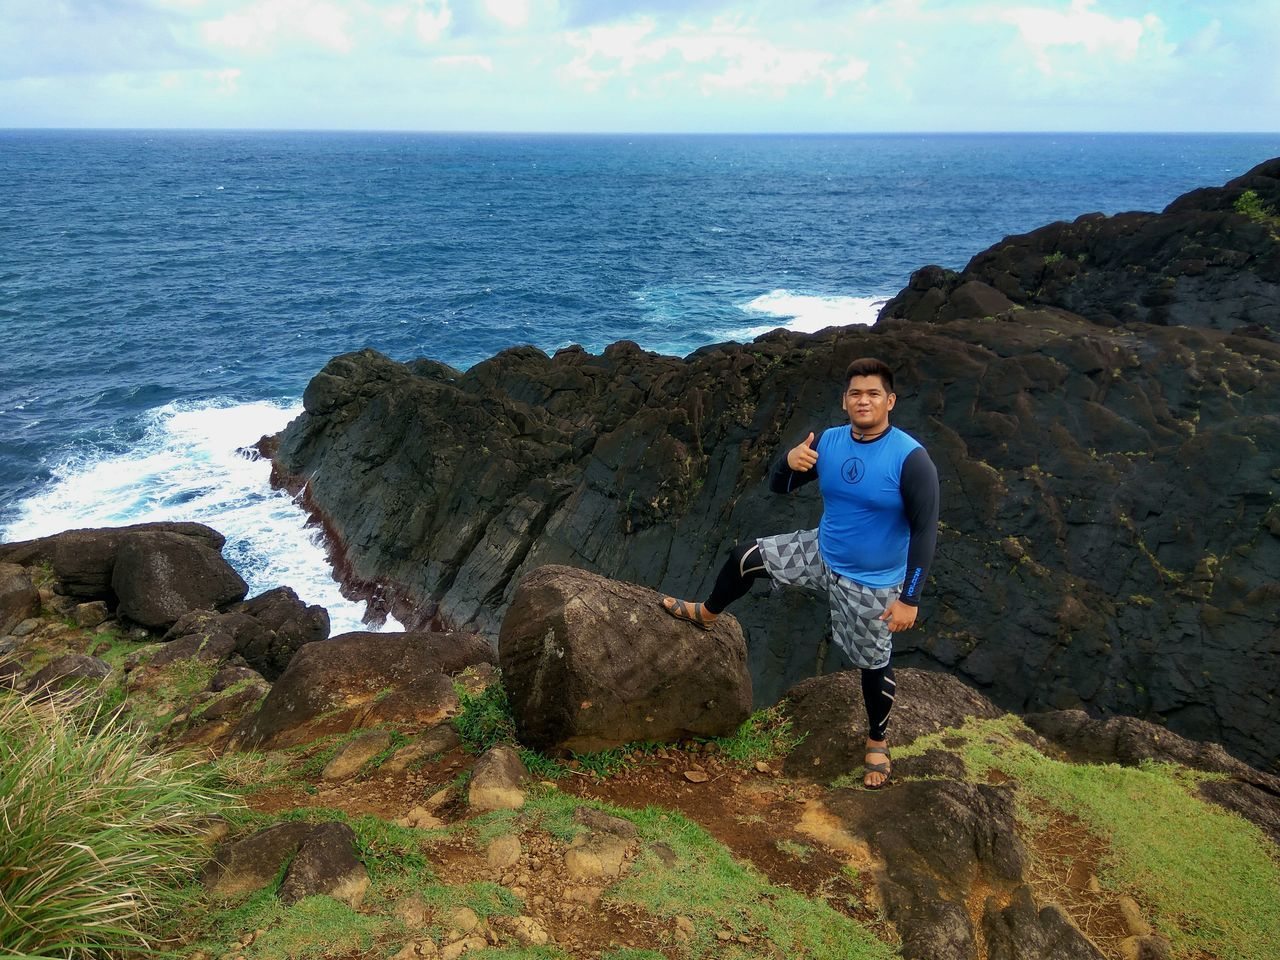 Binurong point.. Sea Outdoors Nature Solo Solotraveler Byahenitinoki Travelph TravelPhilippines Catanduanes Island Binurongpoint Beauty In Nature Rollinghills Beachphotography Beach Wanderlust Sky